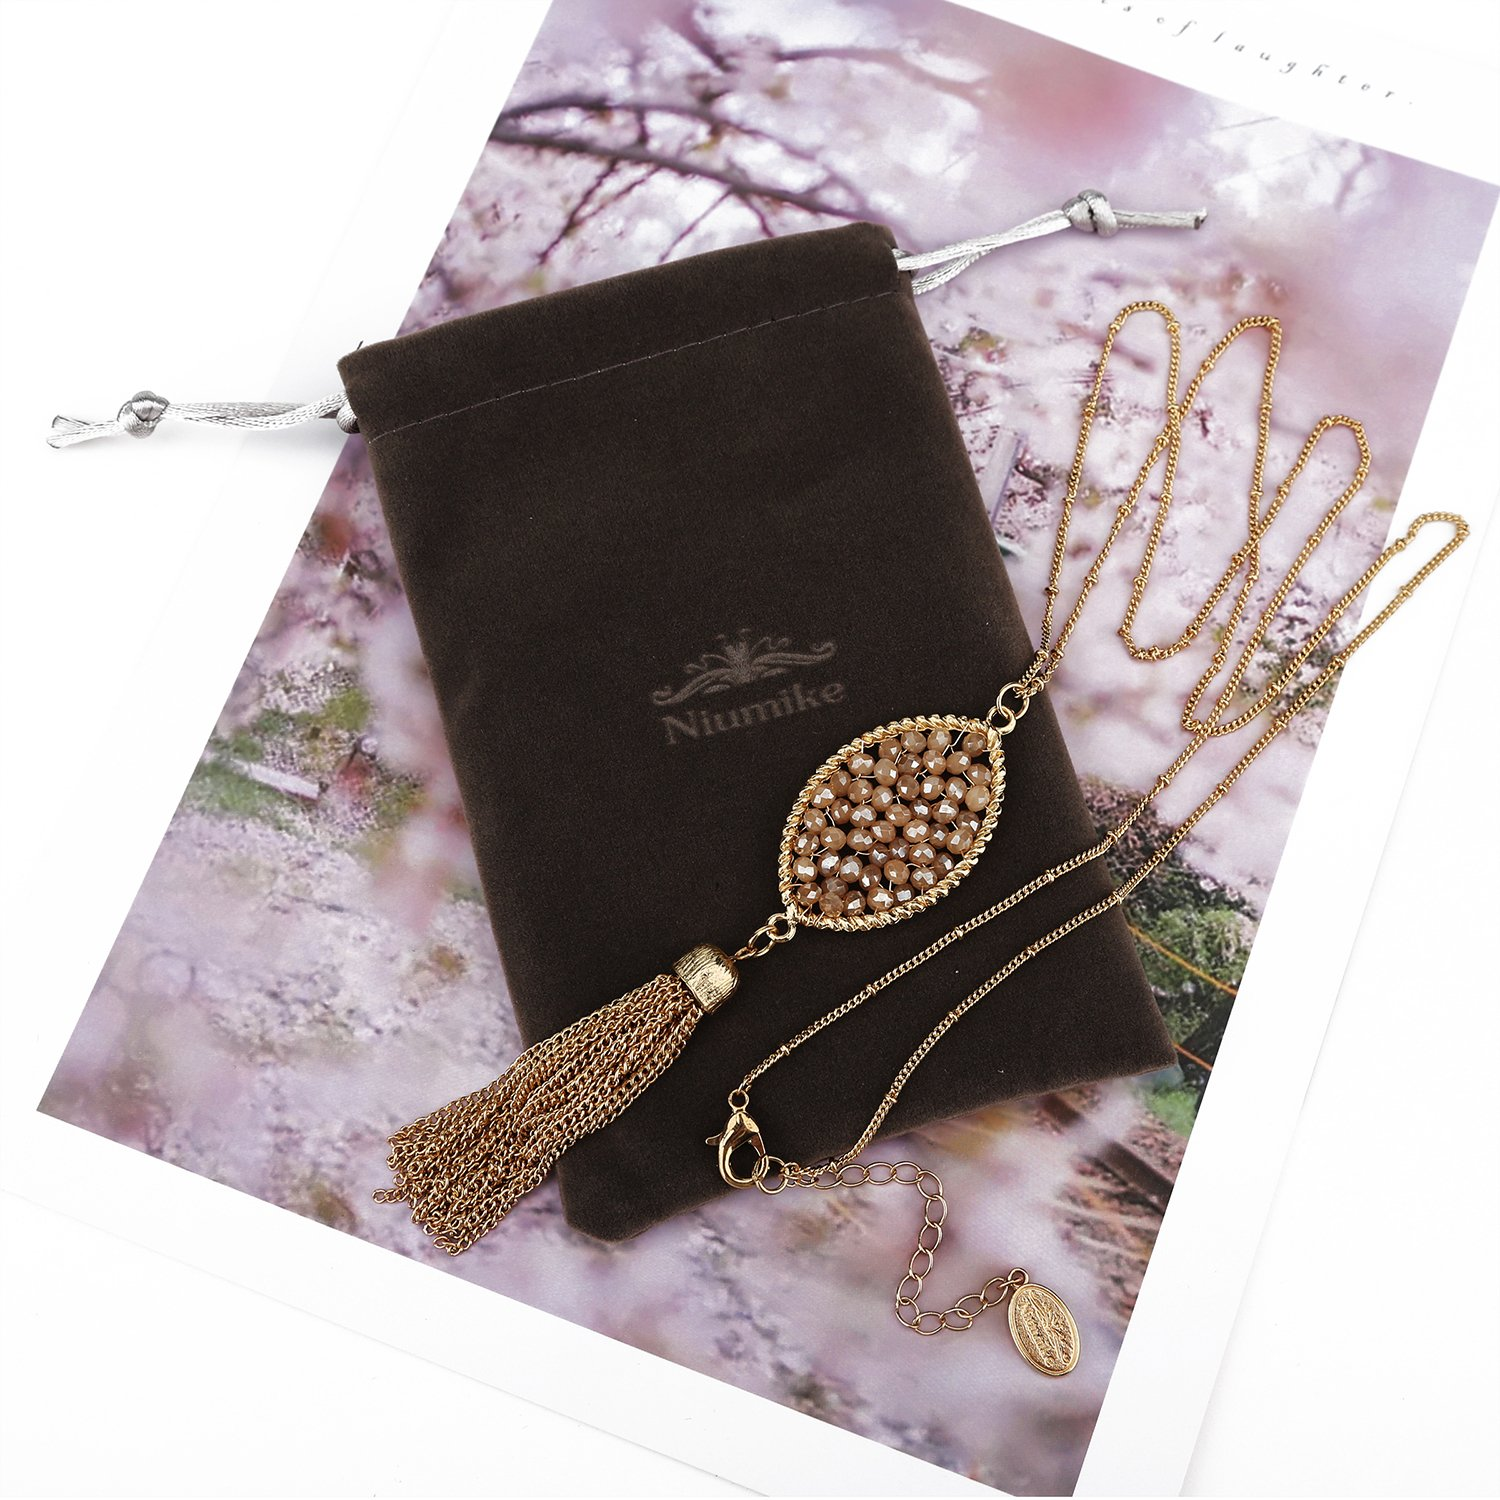 Niumike Crystal Hand Braided Oval Necklaces Long Chain Tassel Necklace Statement Jewelry,Free Flannel Bag Free Flannel Bag (White)